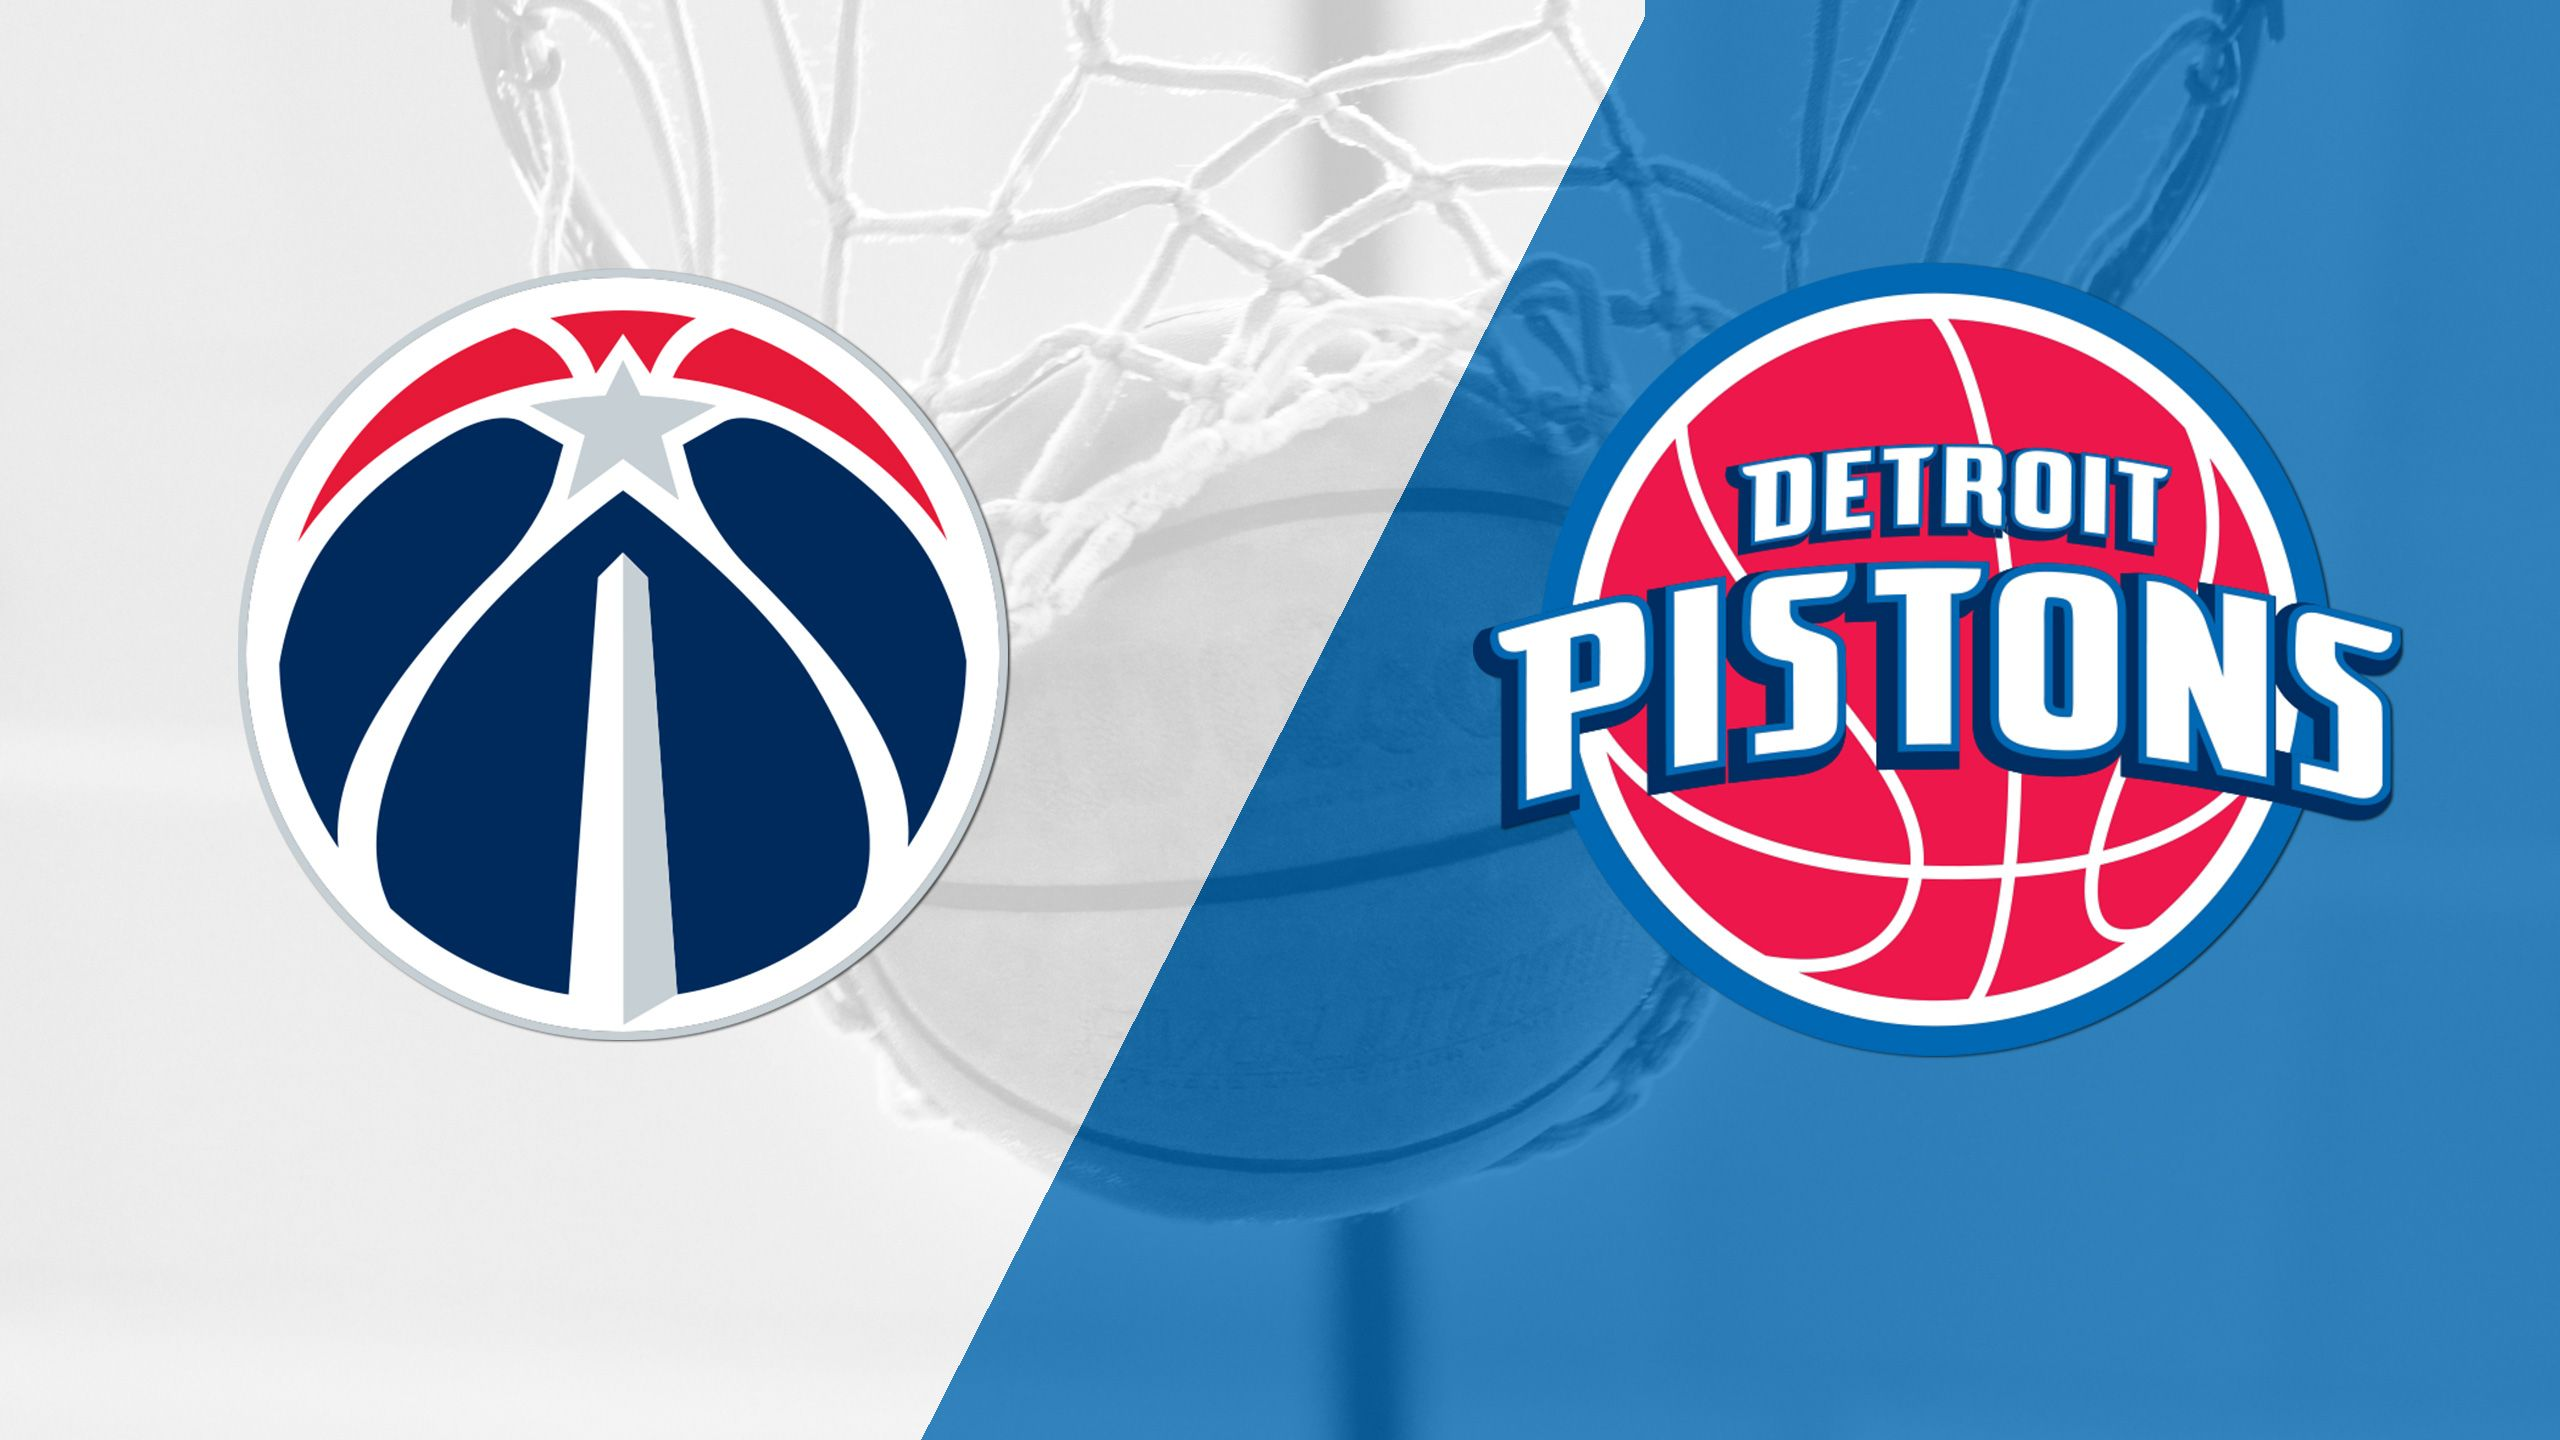 In Spanish - Washington Wizards vs. Detroit Pistons